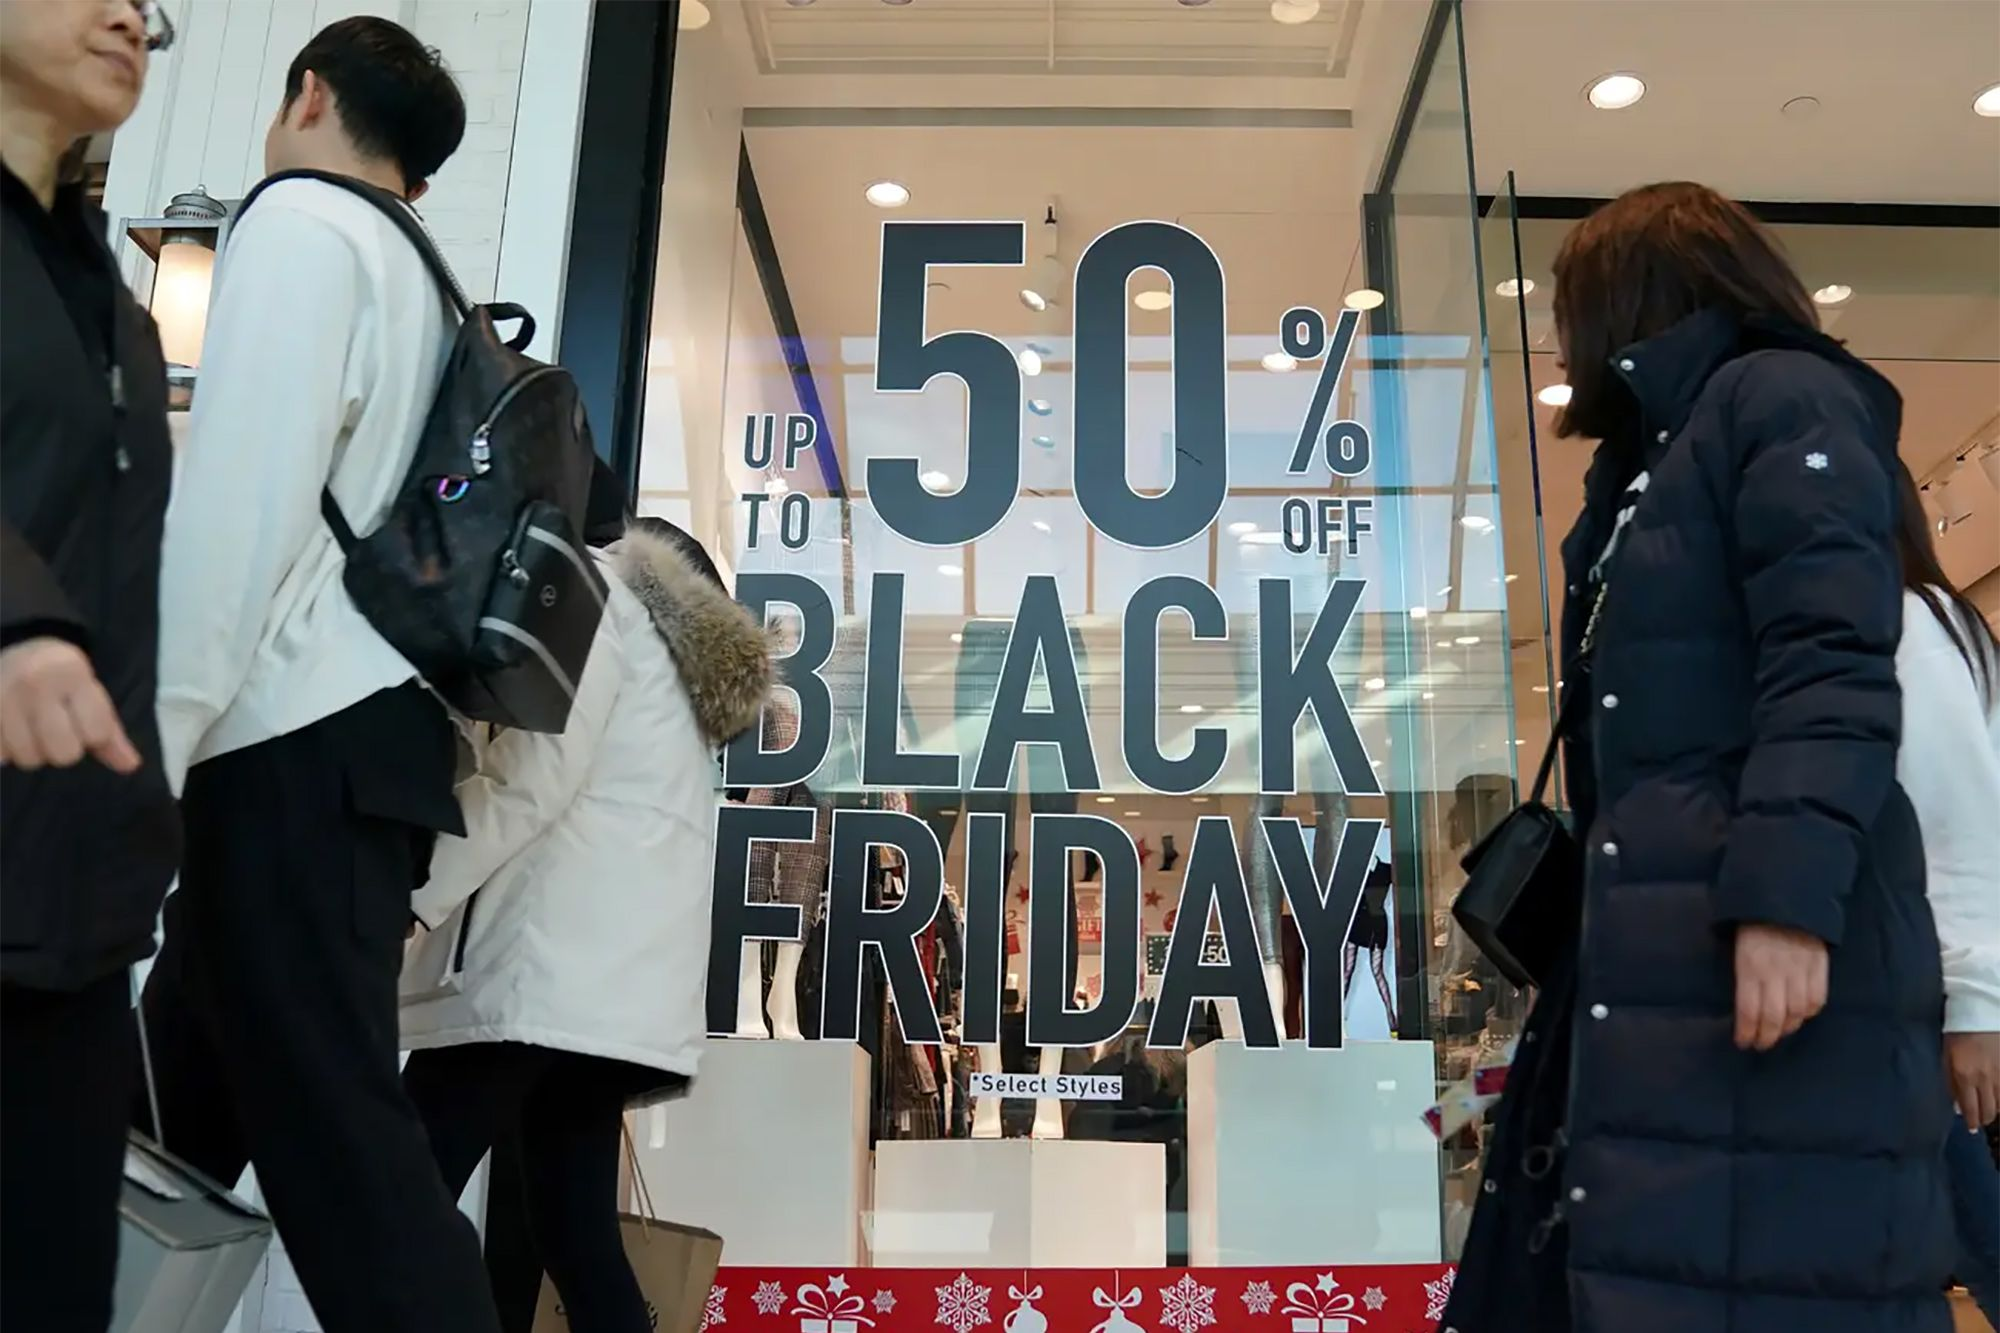 Cyber Monday Spending Soars to Record-High $9.2 Billion Online, With a Whopping $3 Billion Spent via Smartphones